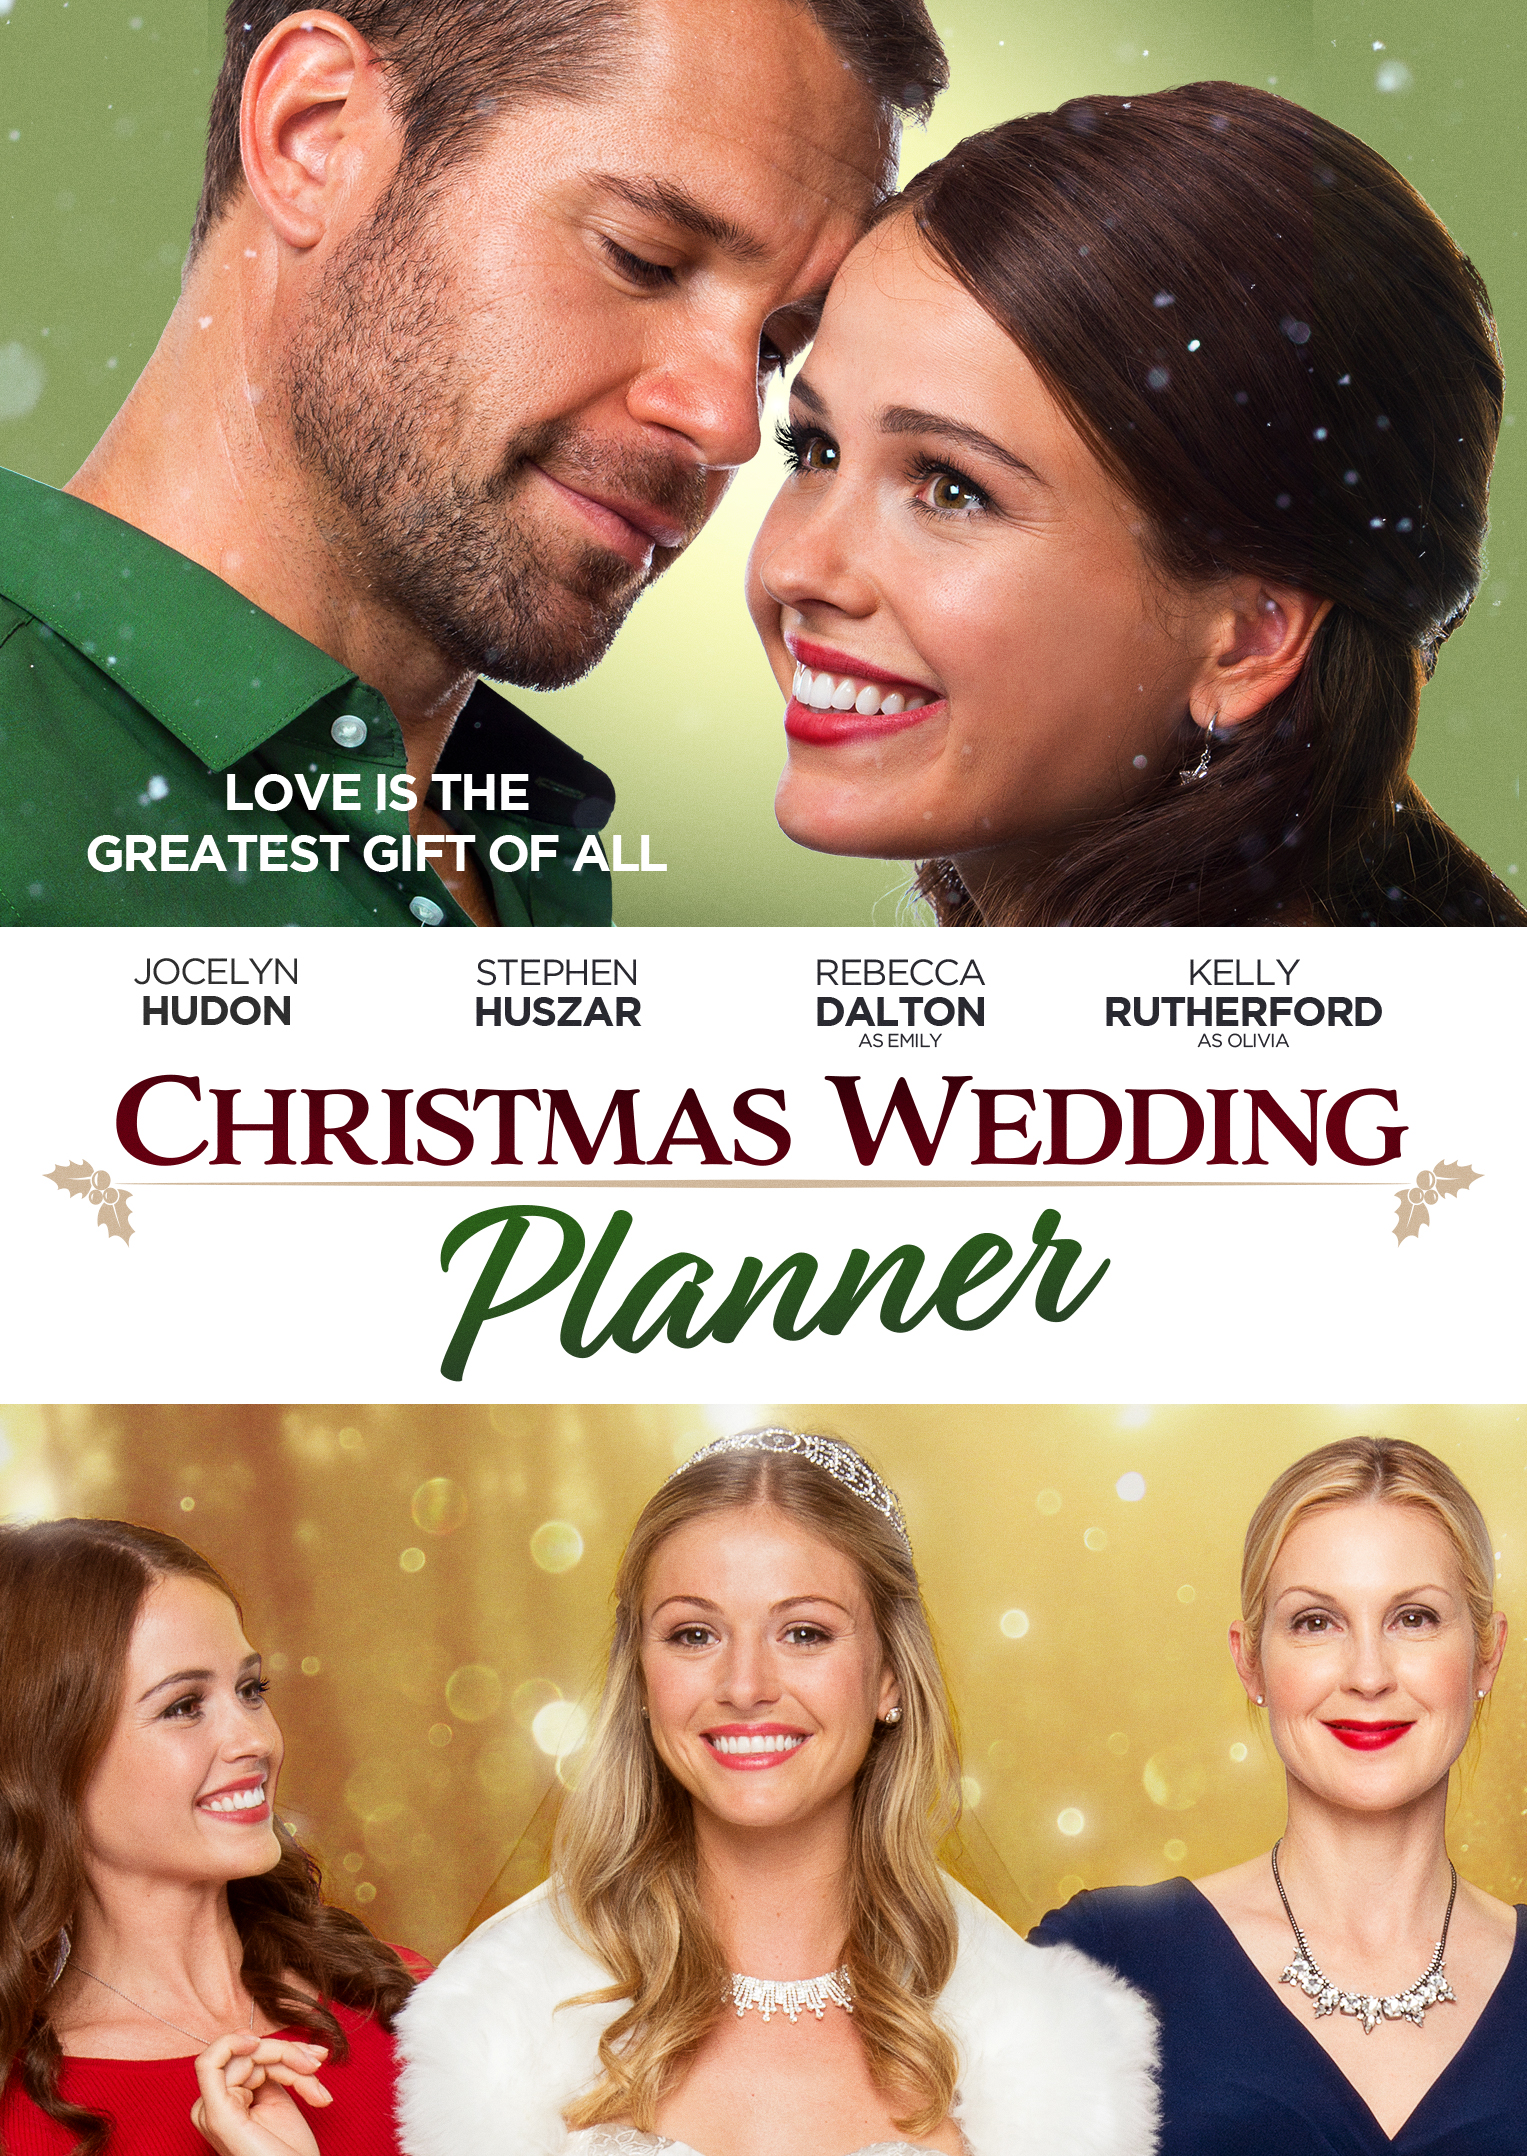 Christmas Wedding Planner (TV Movie 2017) - IMDb